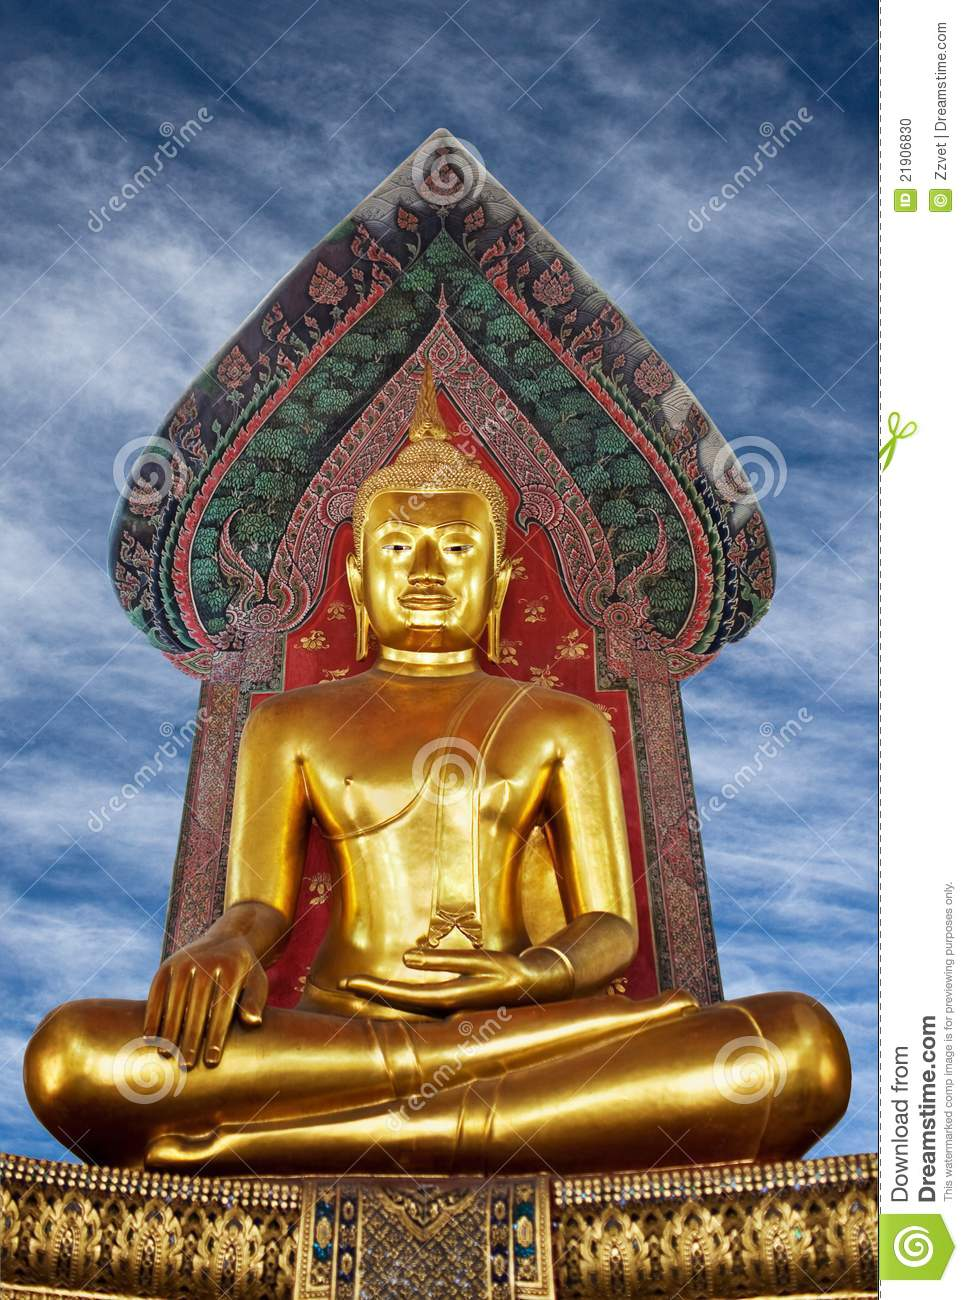 More similar stock images of ` Ancient golden Buddha `